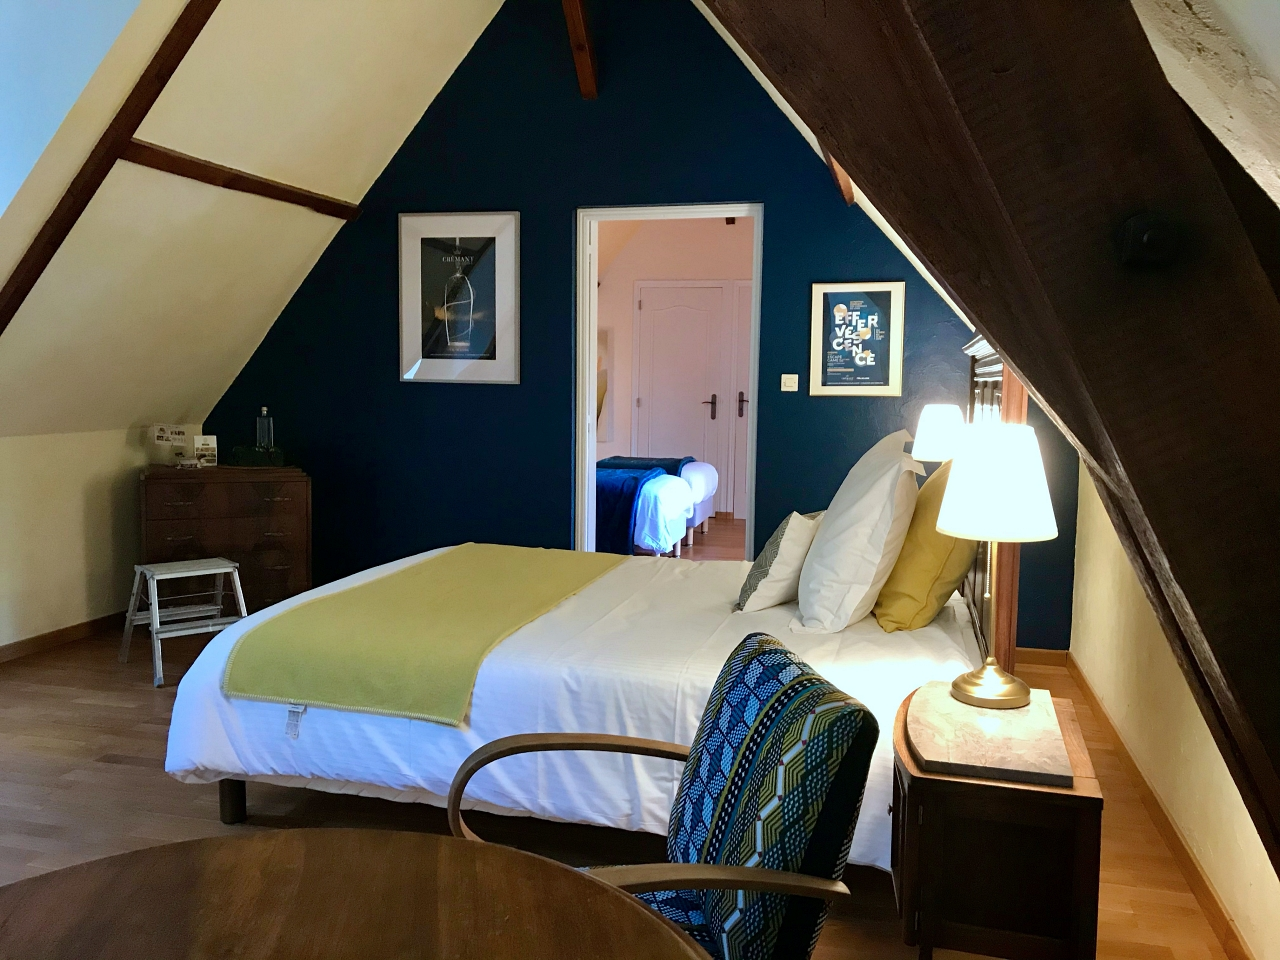 Family ensuite, bed and breakfast, loire valley, saumur, family room for 5